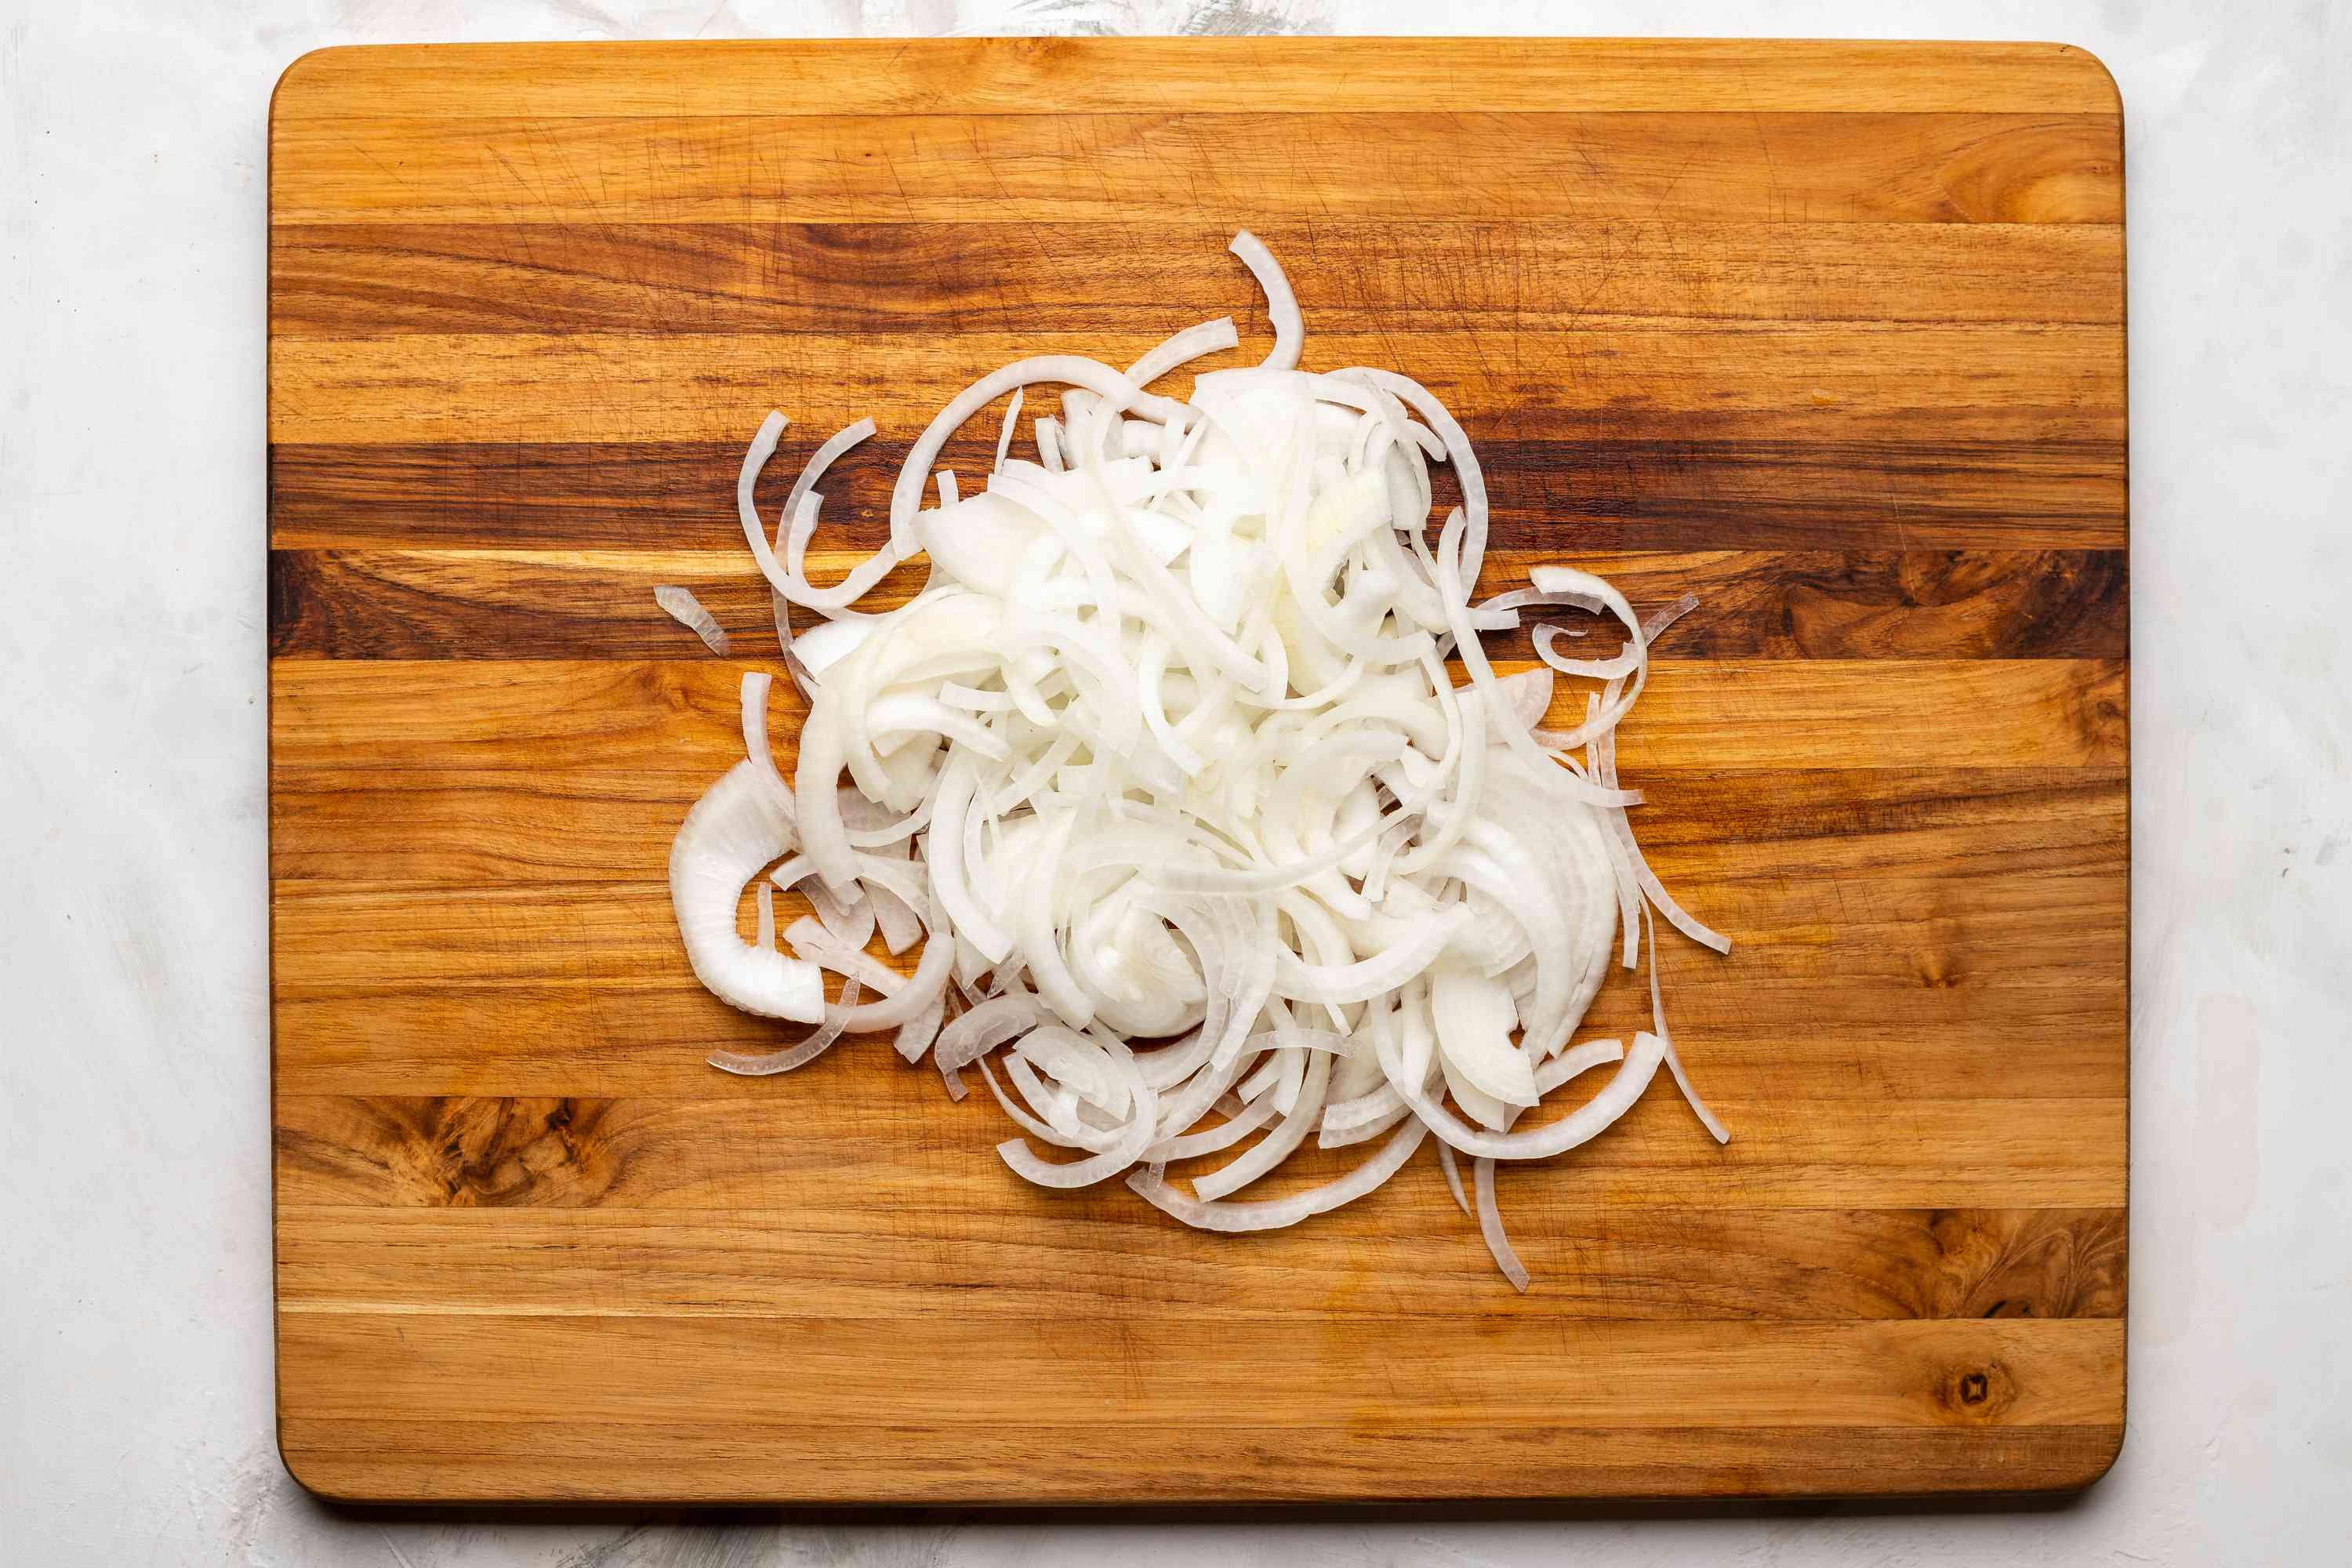 Peel and thinly slice the onion on a cutting board